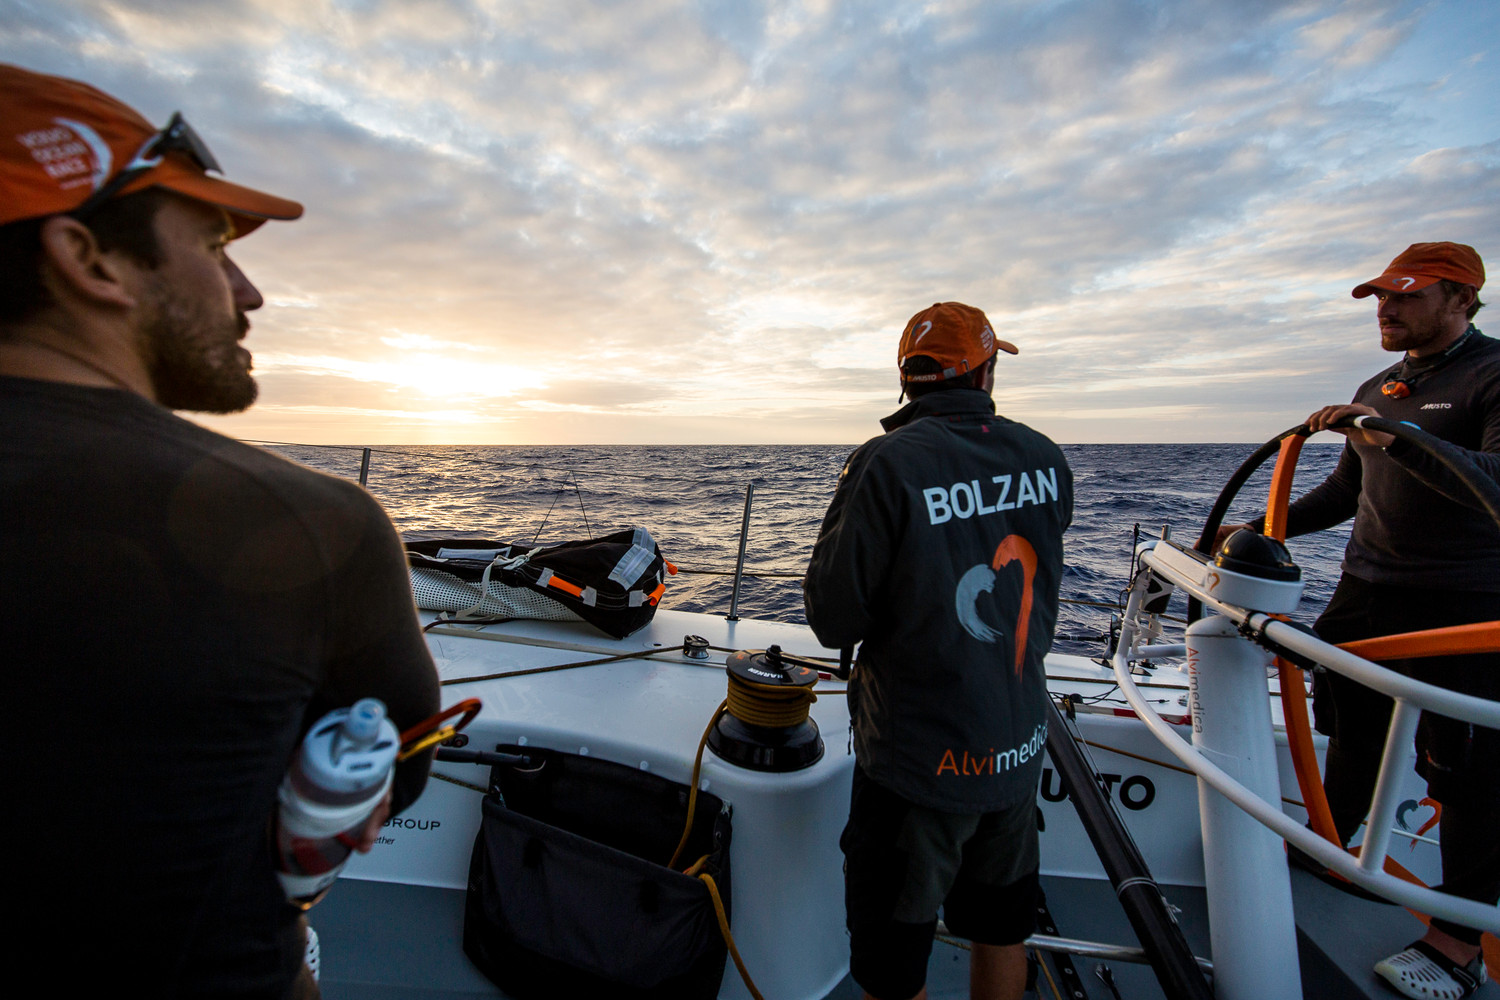 Mark Towill, Alberto Bolzan, and Dave Swete converse on deck as the sun sets on their watch.